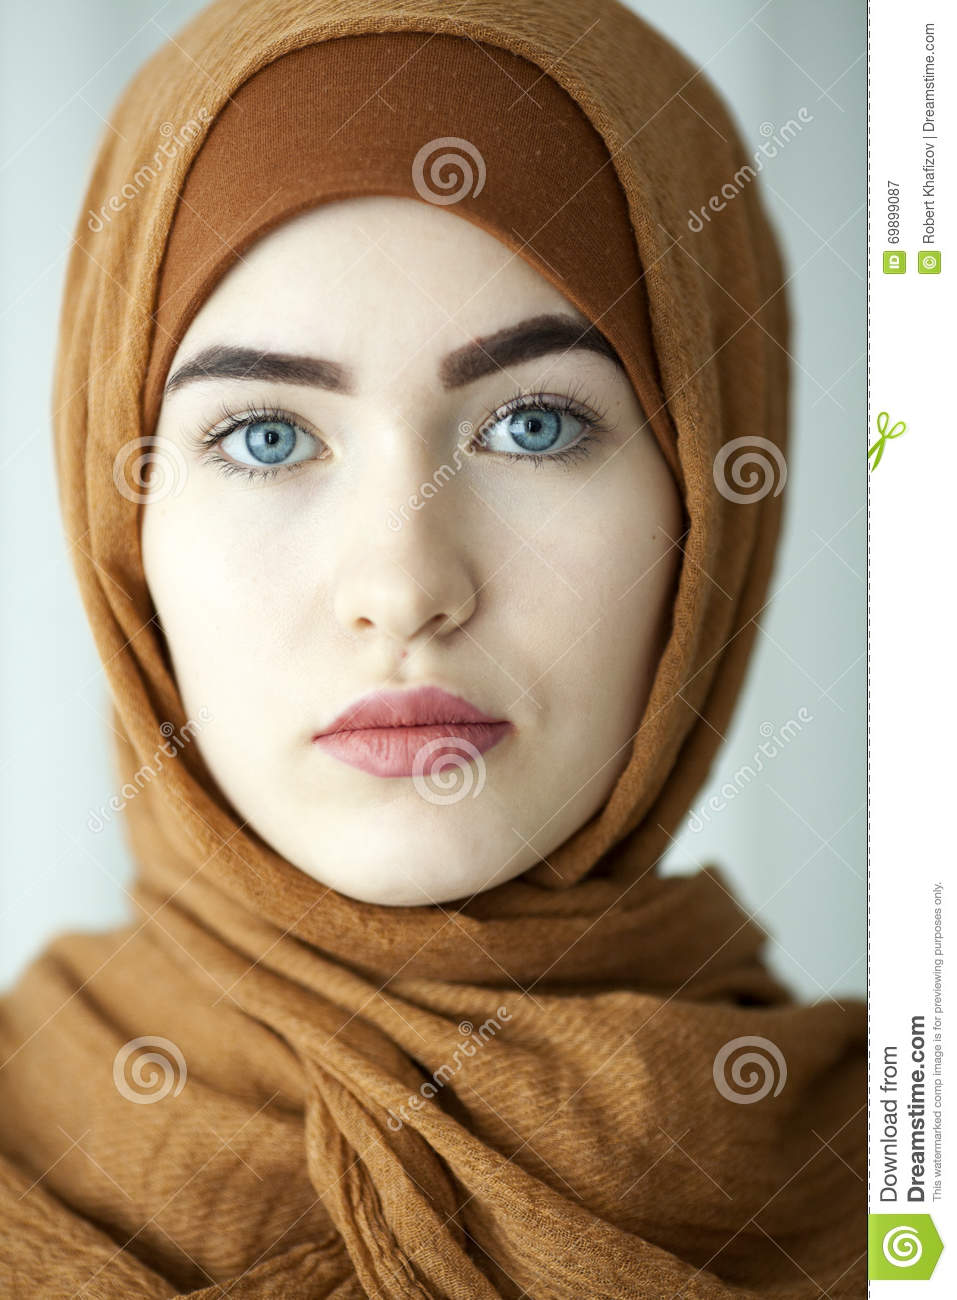 Agree, very Beautiful muslim women face pictures for